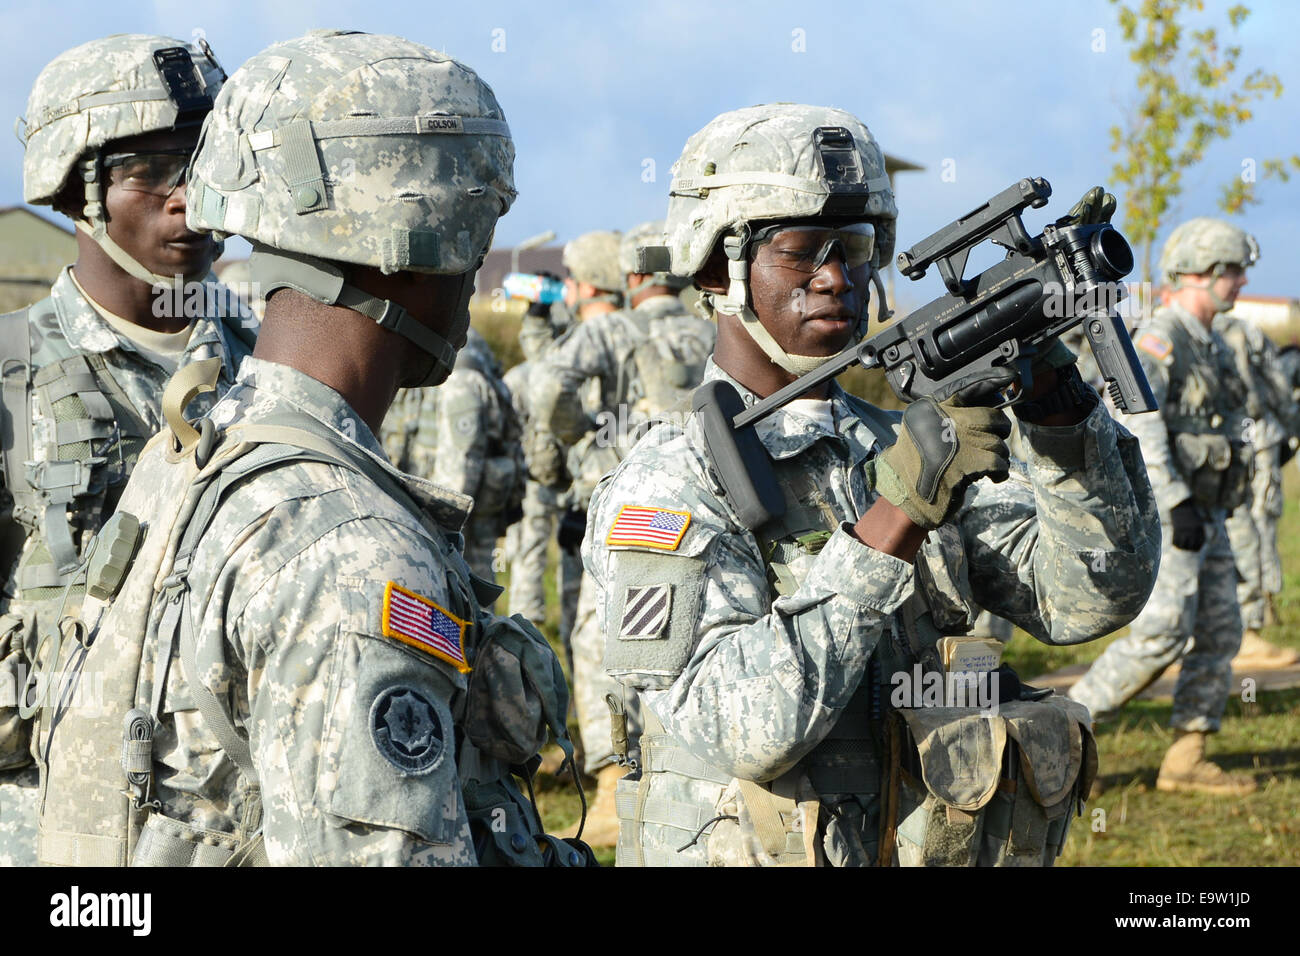 A U.S. Soldier assigned to the 2nd Cavalry Regiment unloads and clears an M320 grenade launcher while participating - Stock Image